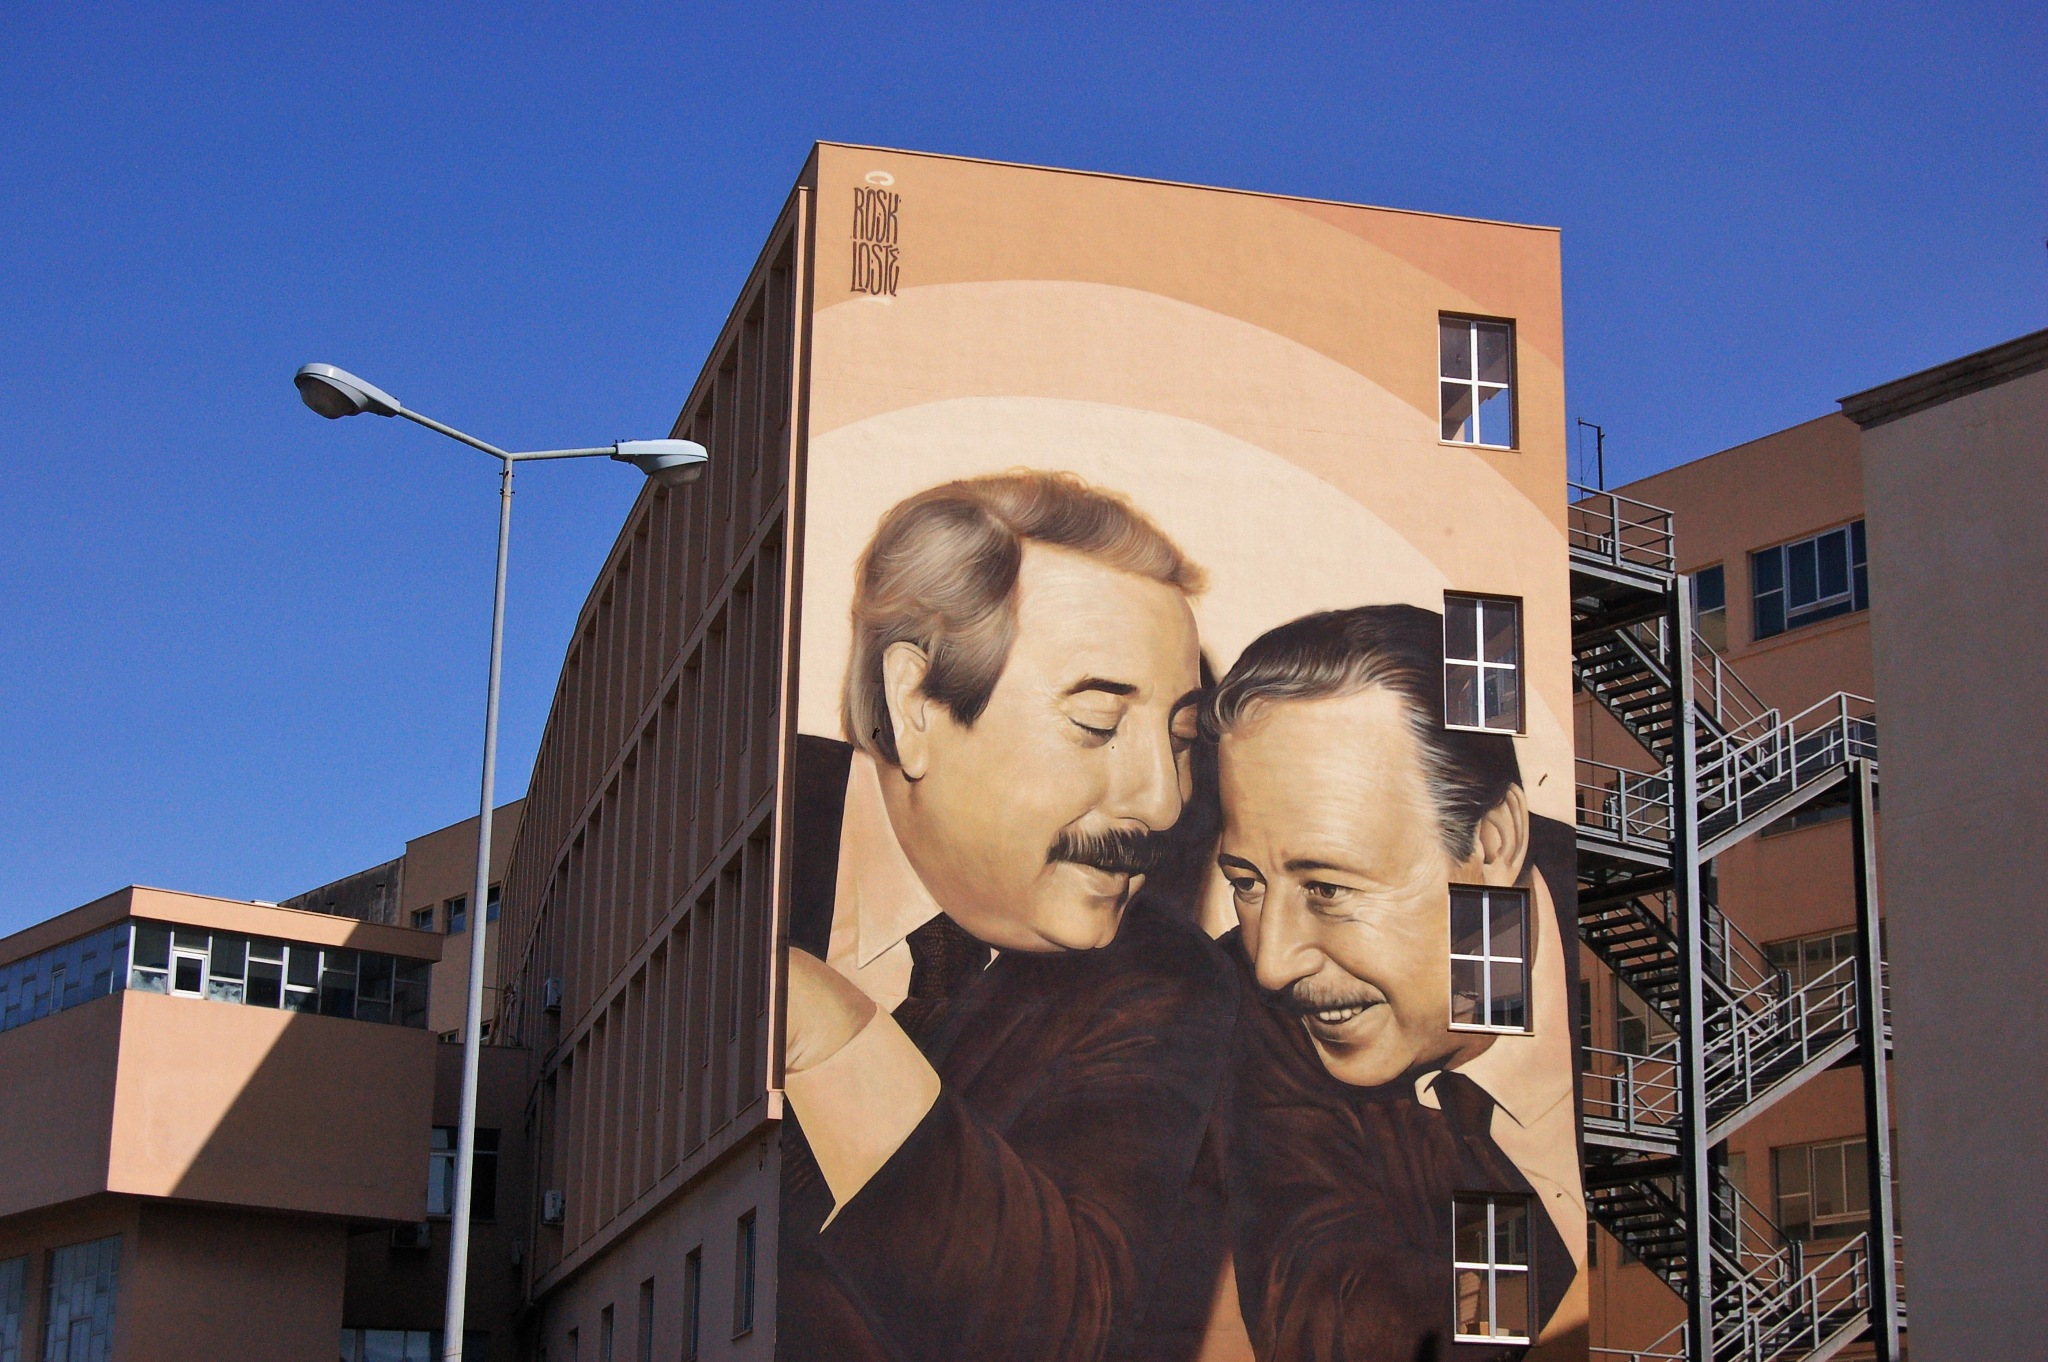 Remembering judges Falcone and Borsellino. by Lisapiera